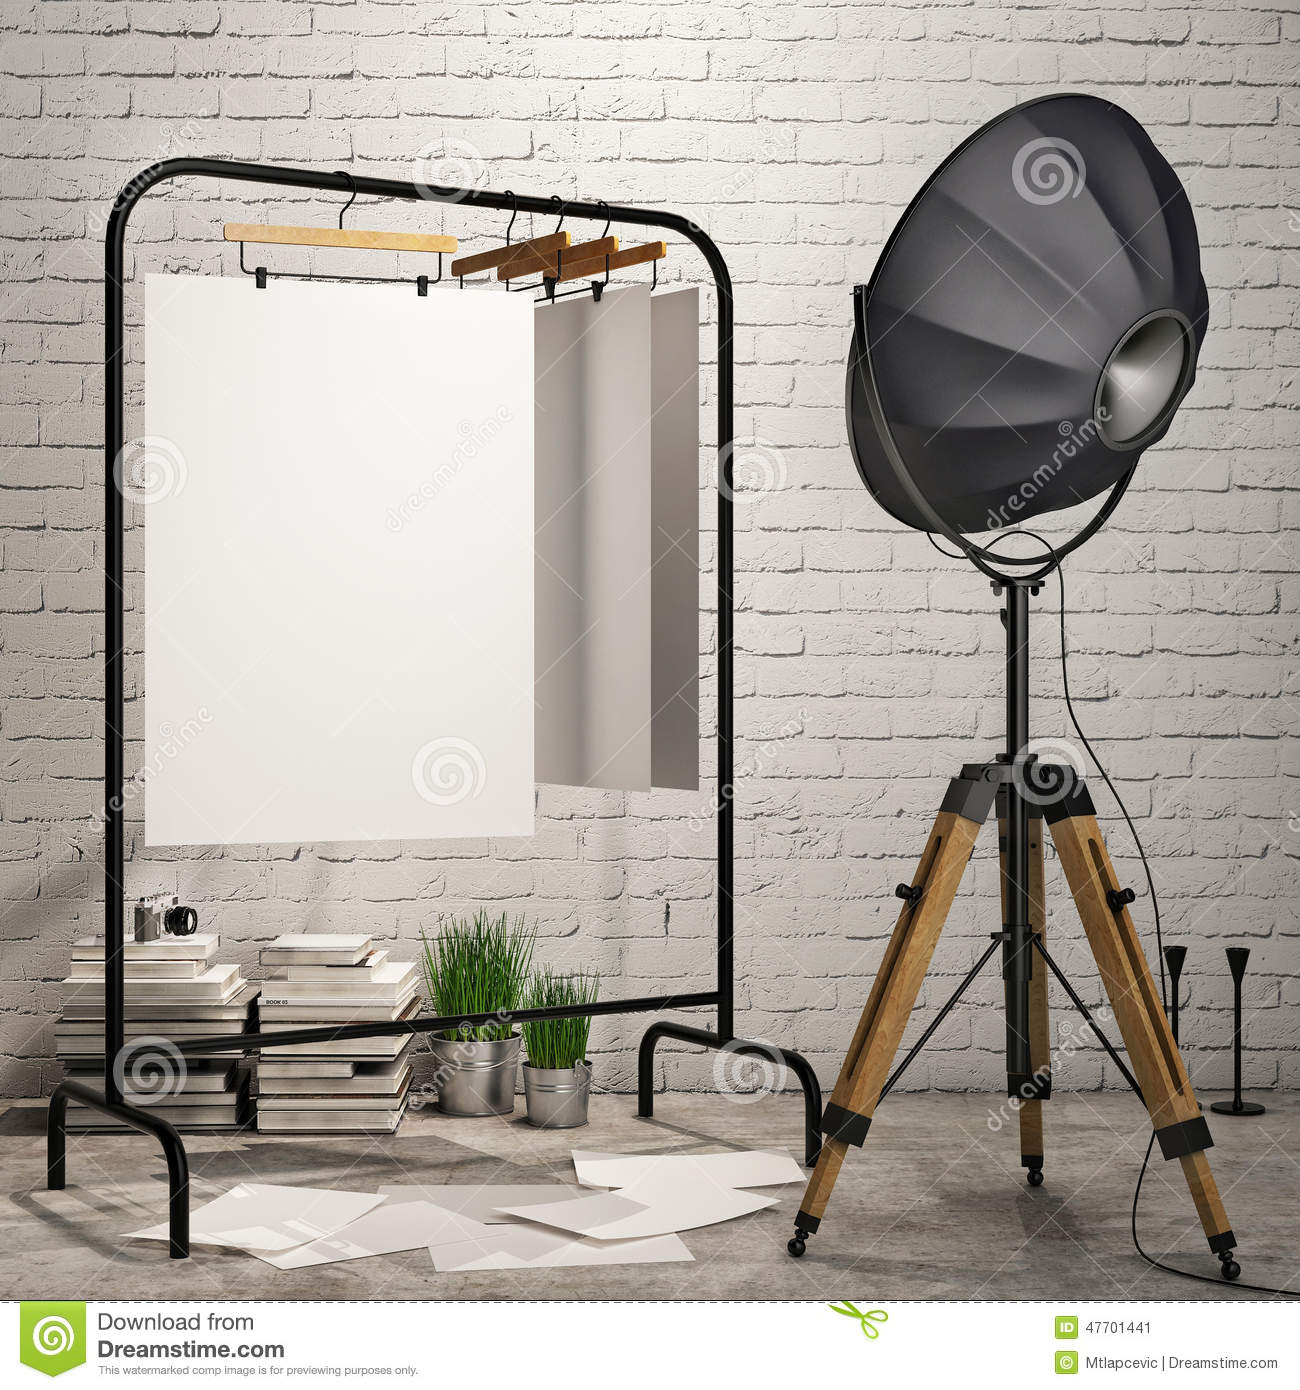 Download Mock Up Posters In Loft Interior Background With Industry Lamp Stock Image - Image of creative, interior: 47701441